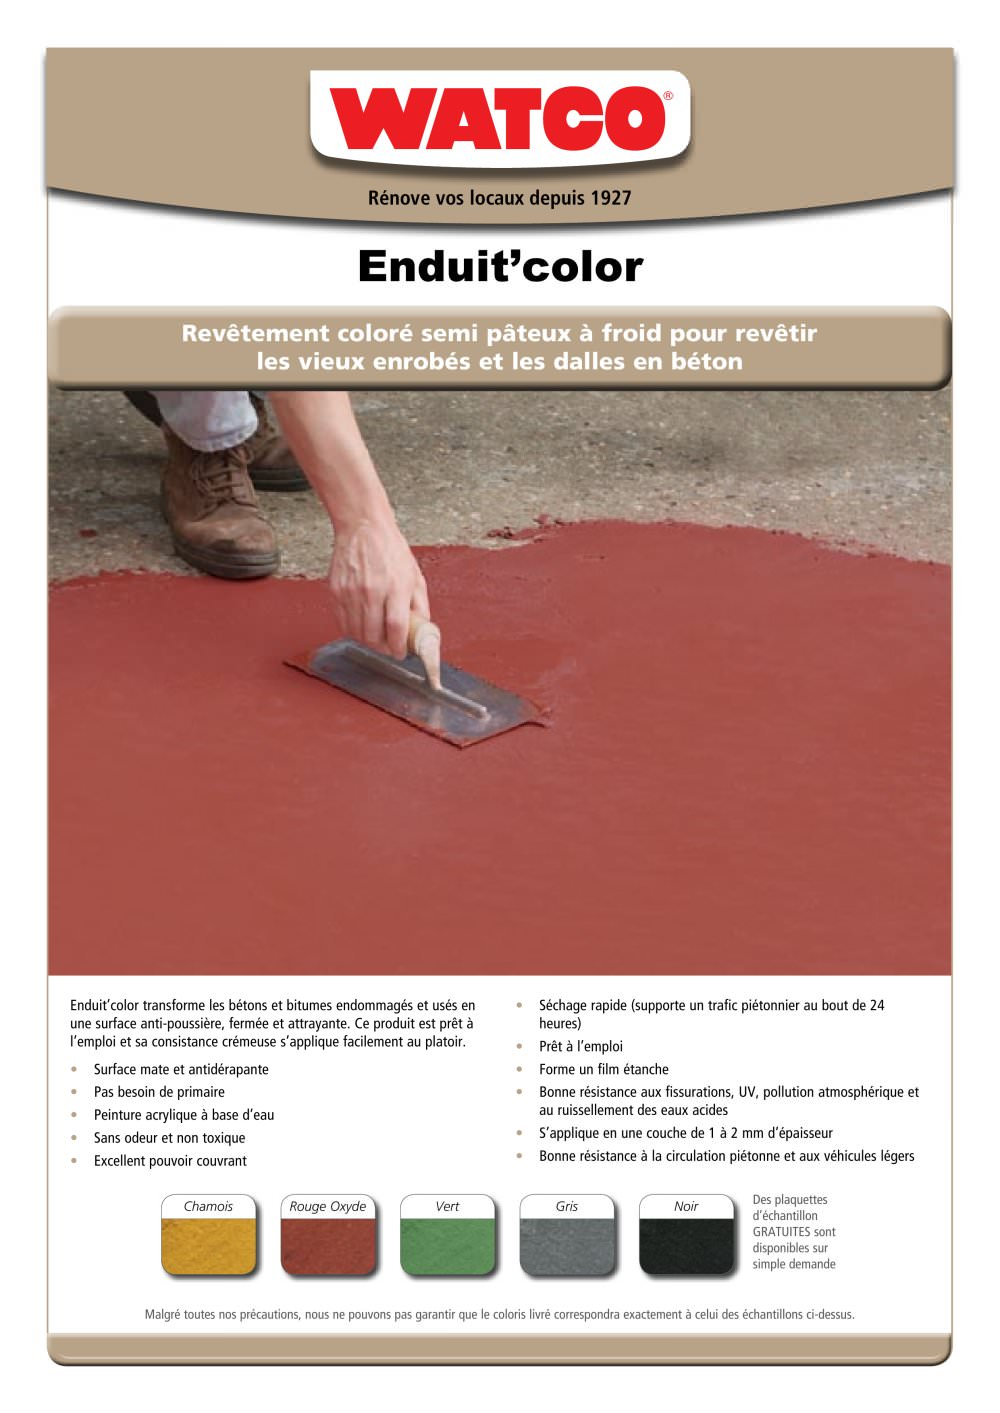 Http://www.watco.fr/ragreage-couleur-enduit-color.html - 1 / 2 Pages